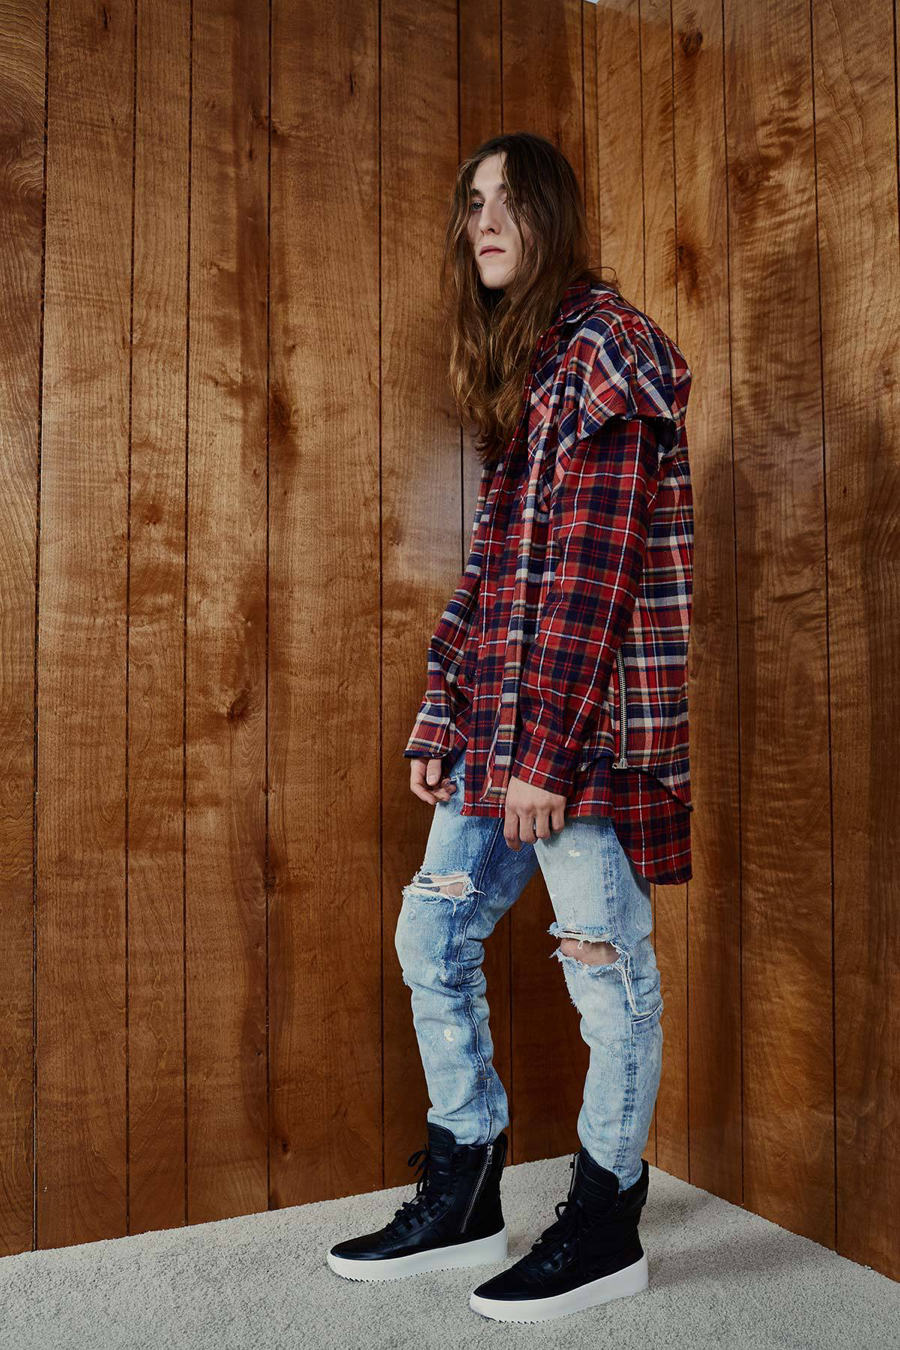 Fear of God Embraces Grunge Styles for Fourth Collection